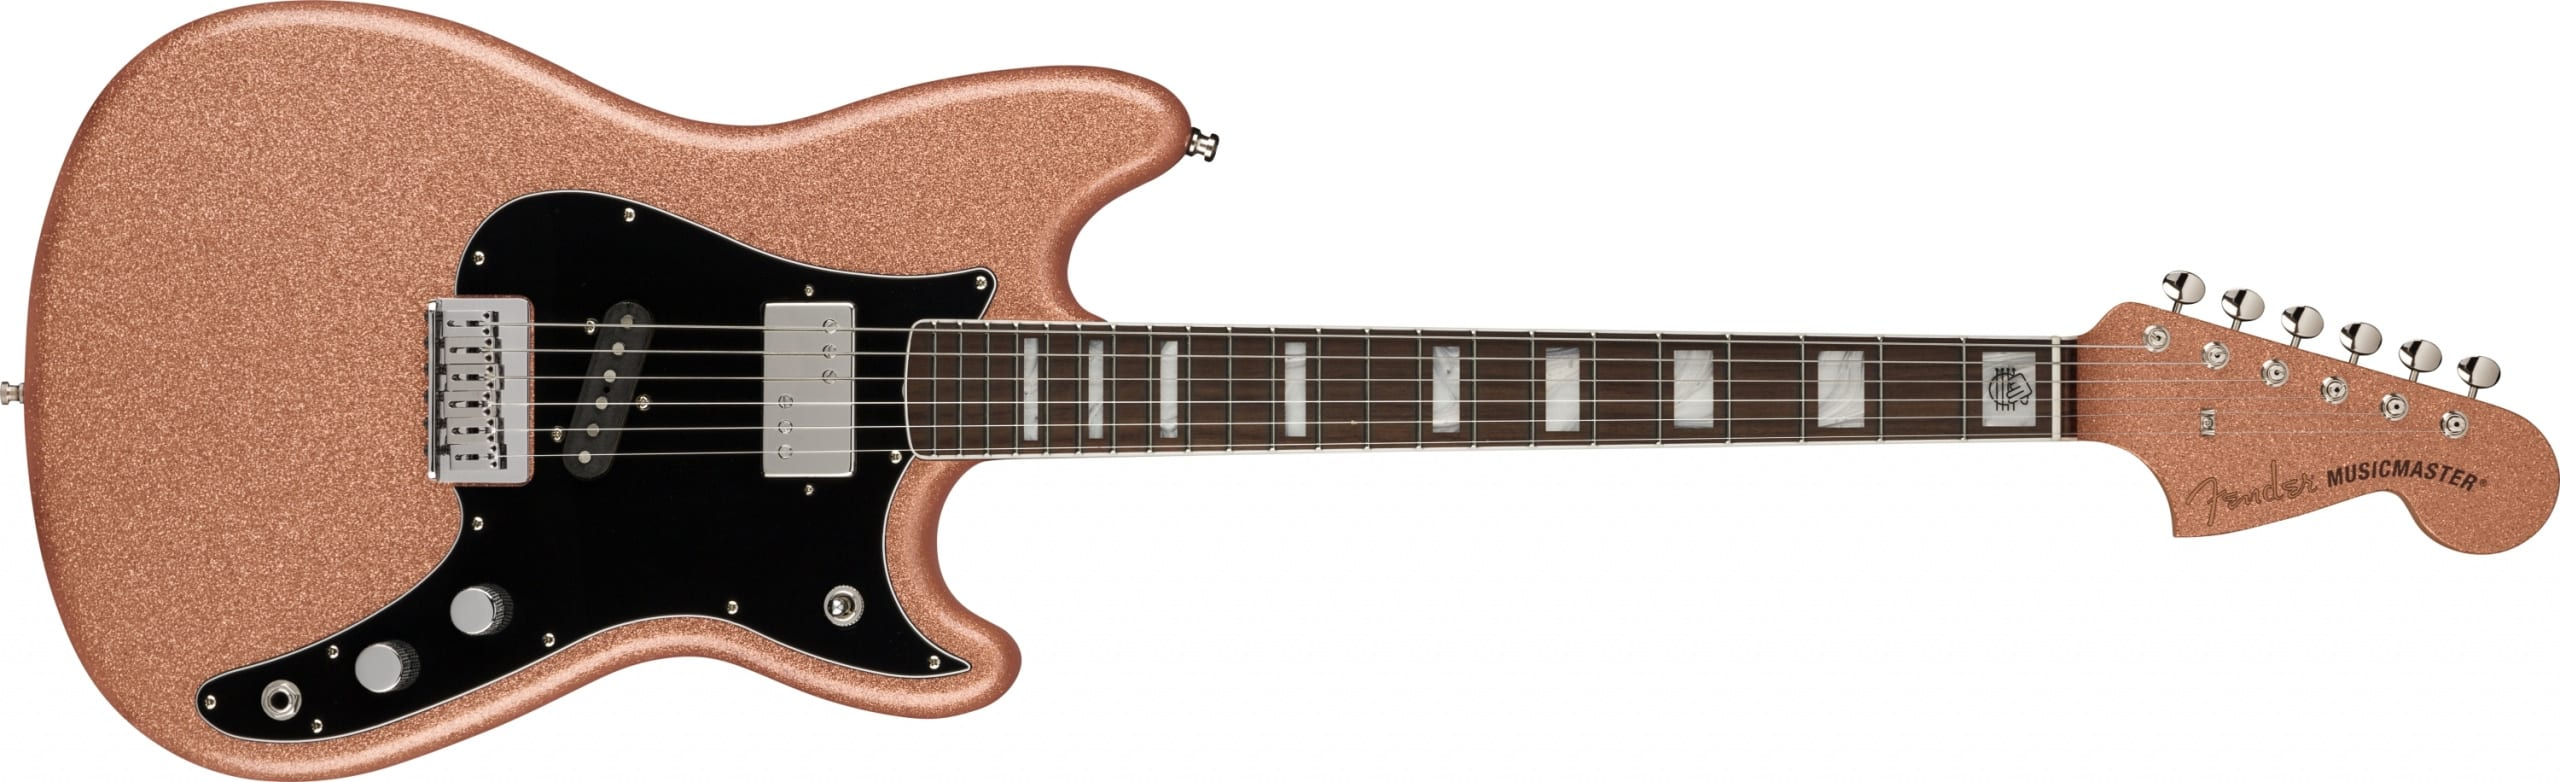 Fender Play Foundation Musicaster in Copper Sparkle by Dennis Galuszka